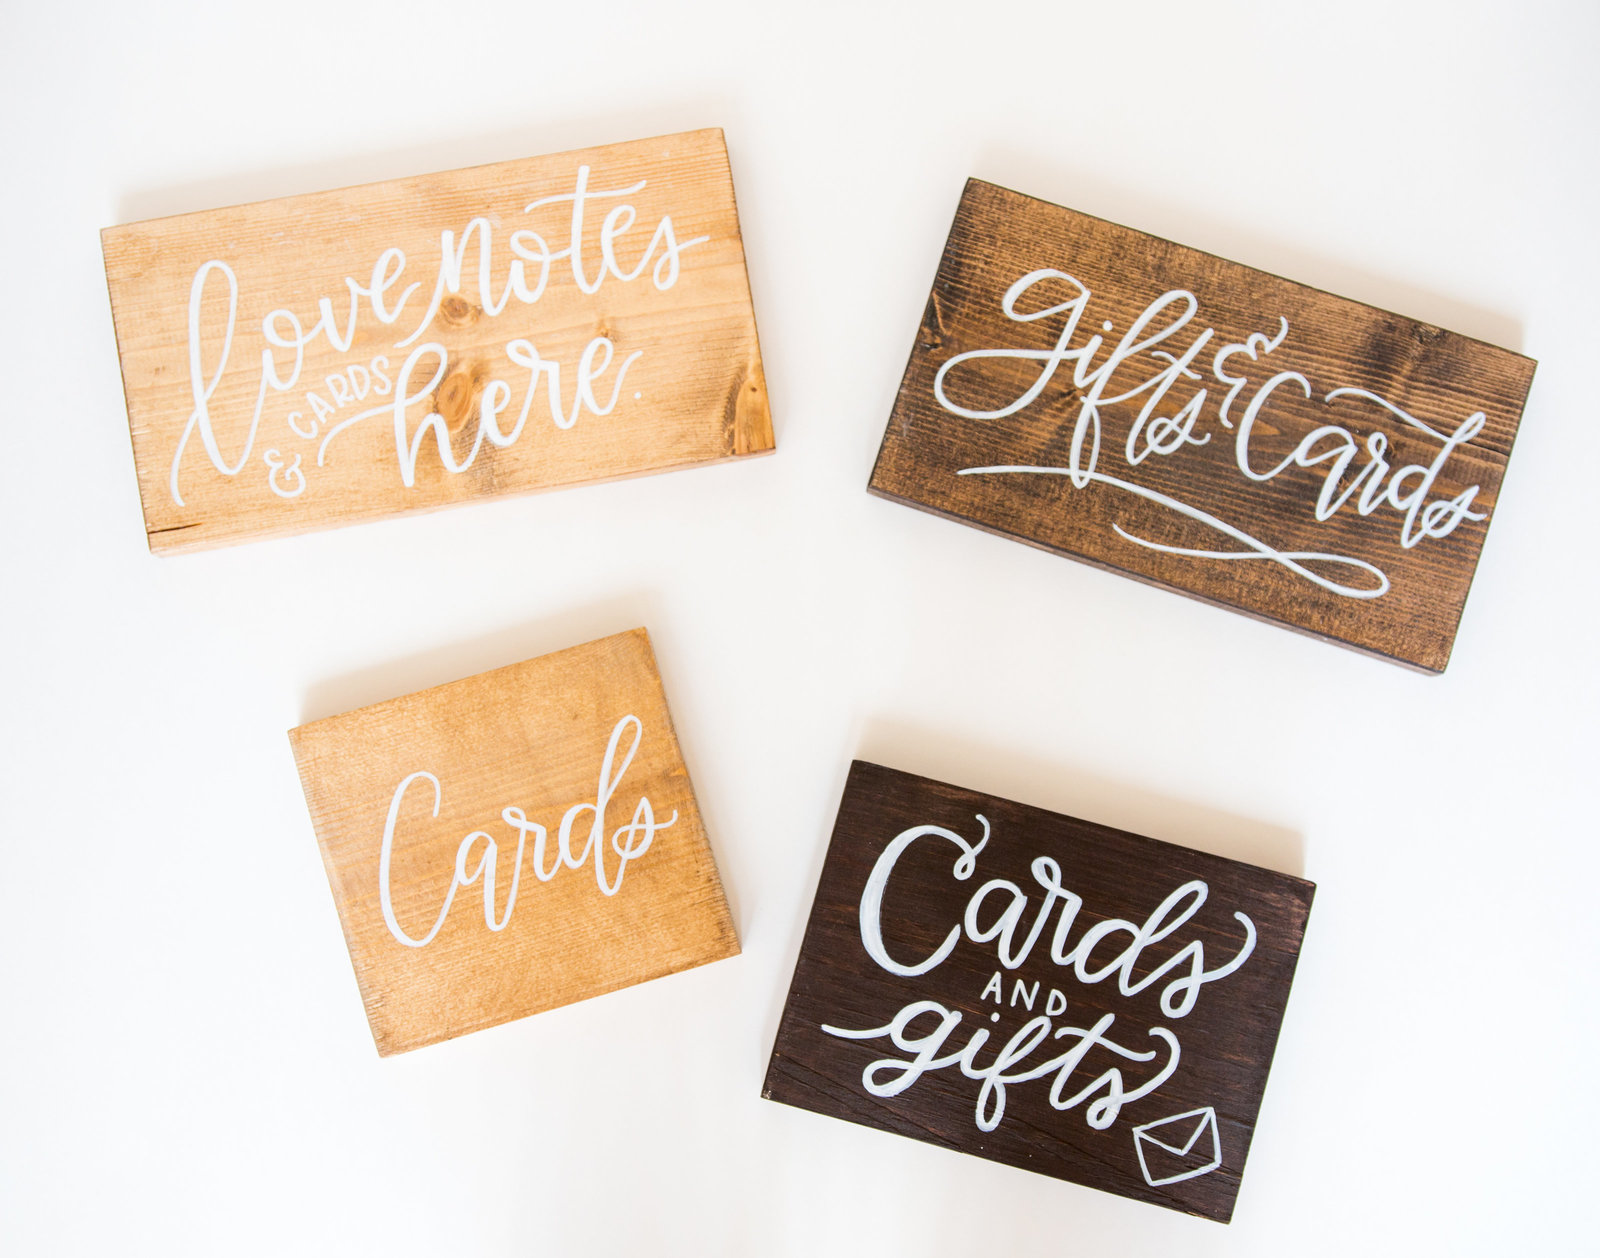 various wood signs with white calligraphy for gifts and cards to rent for weddings and events with Hue and FA rentals